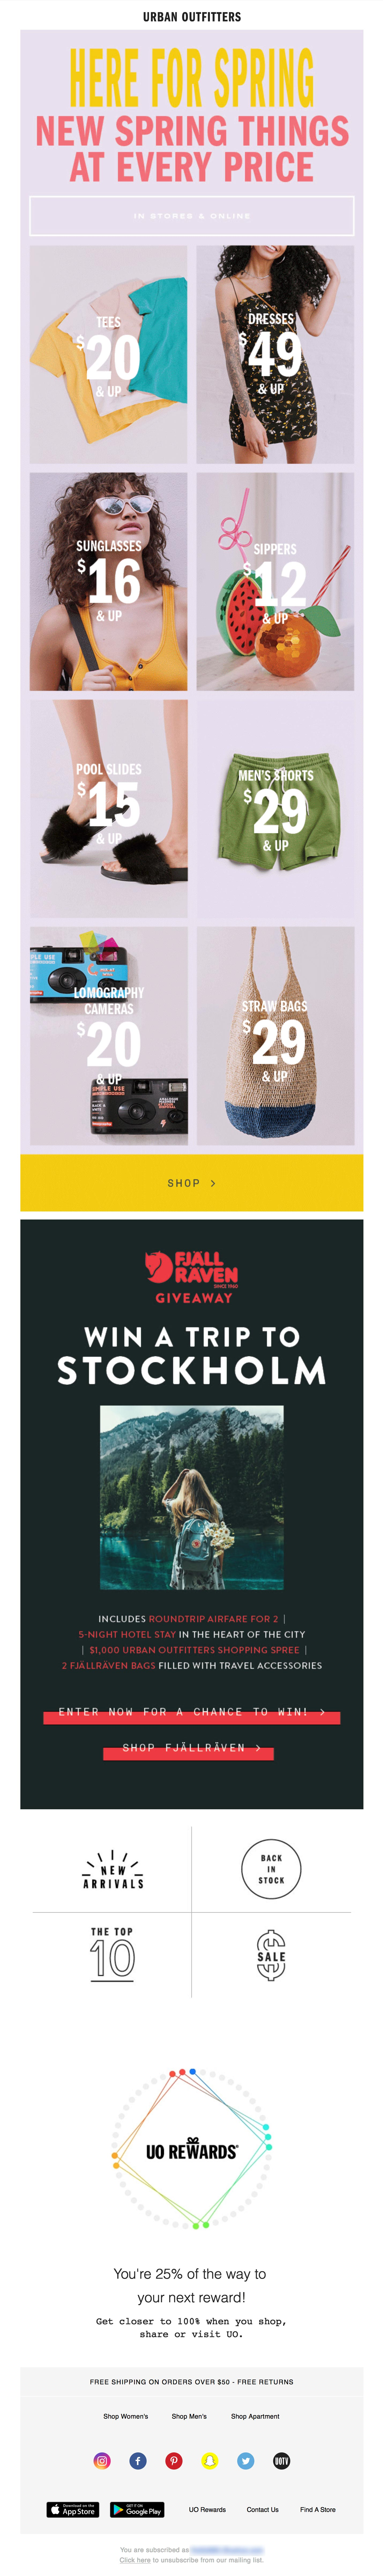 Urban Outfitters: Spring Essentials Email